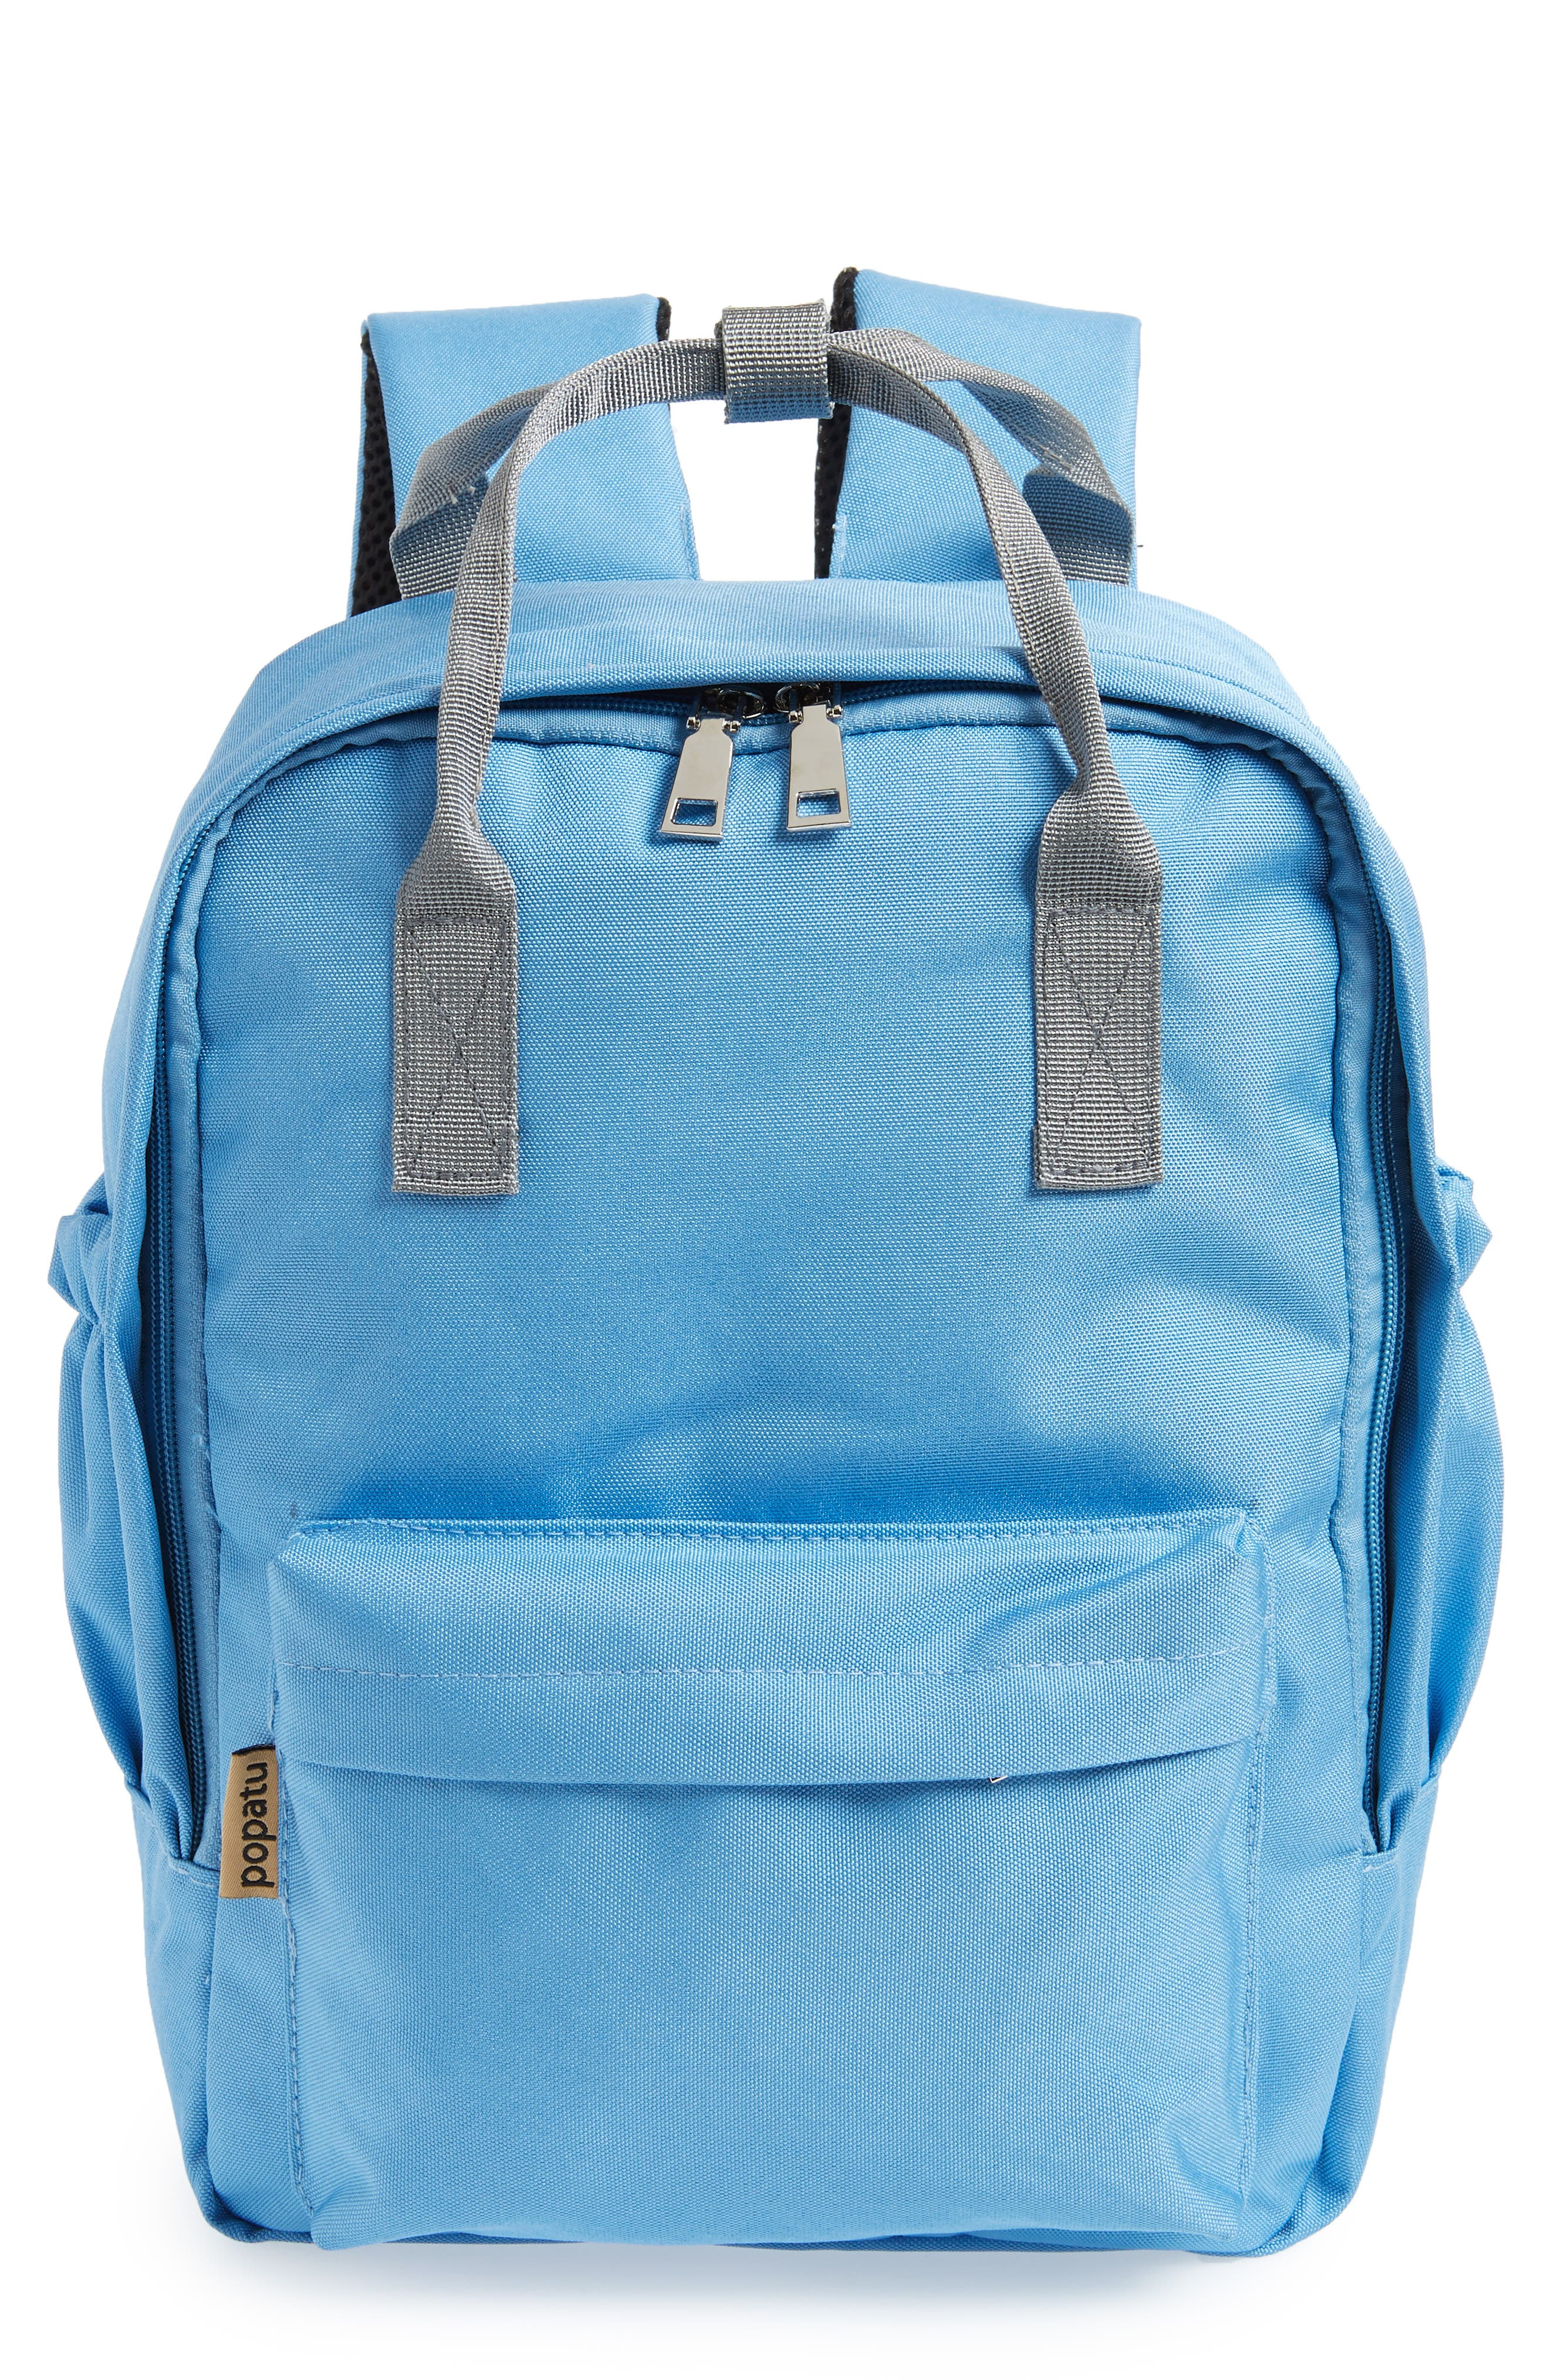 Solid Backpack,                             Main thumbnail 1, color,                             Light Blue/ Grey